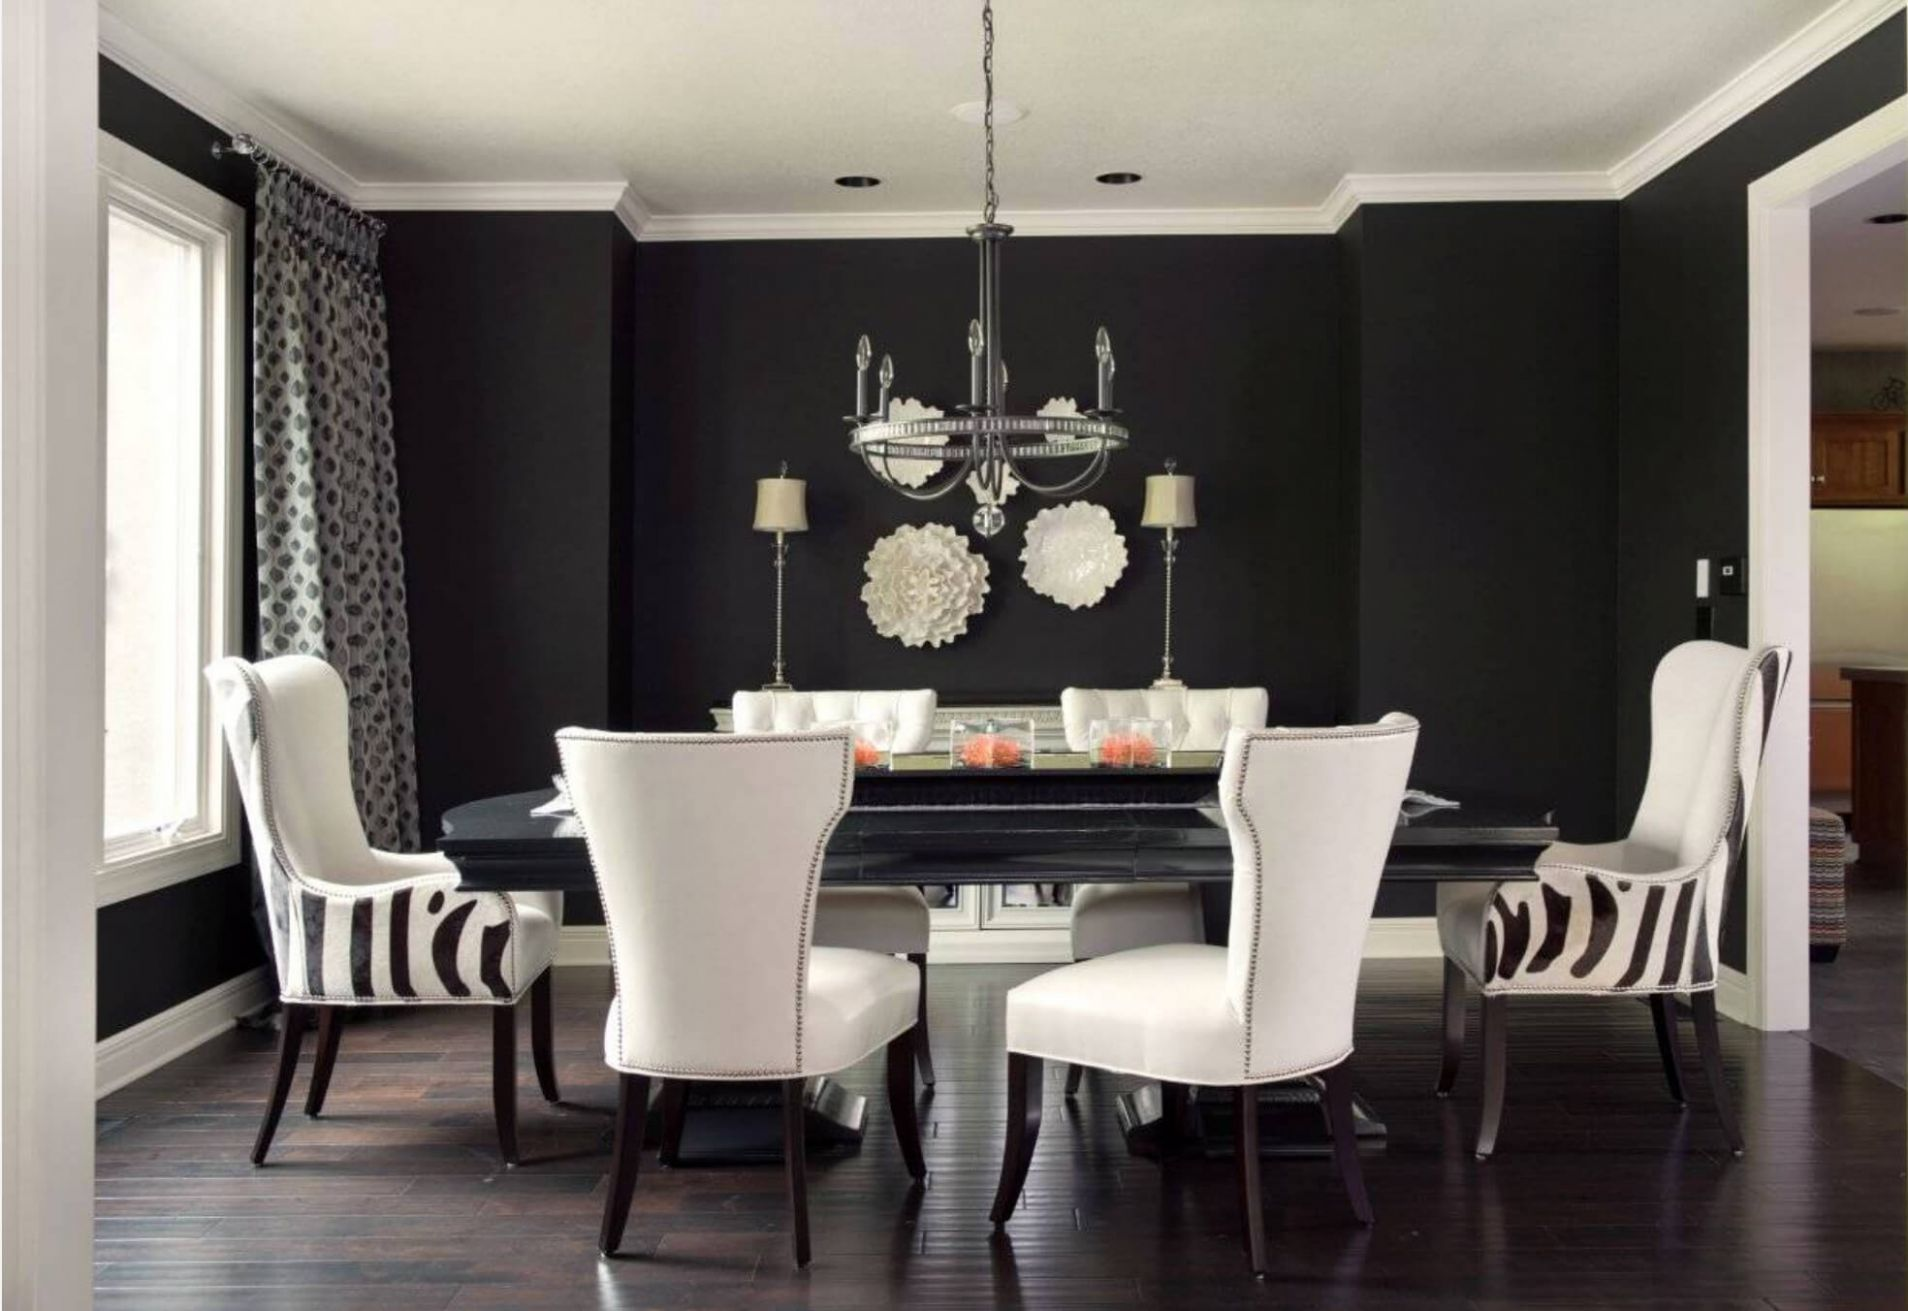 12 Creative Ideas for Dining Room Walls | Freshome